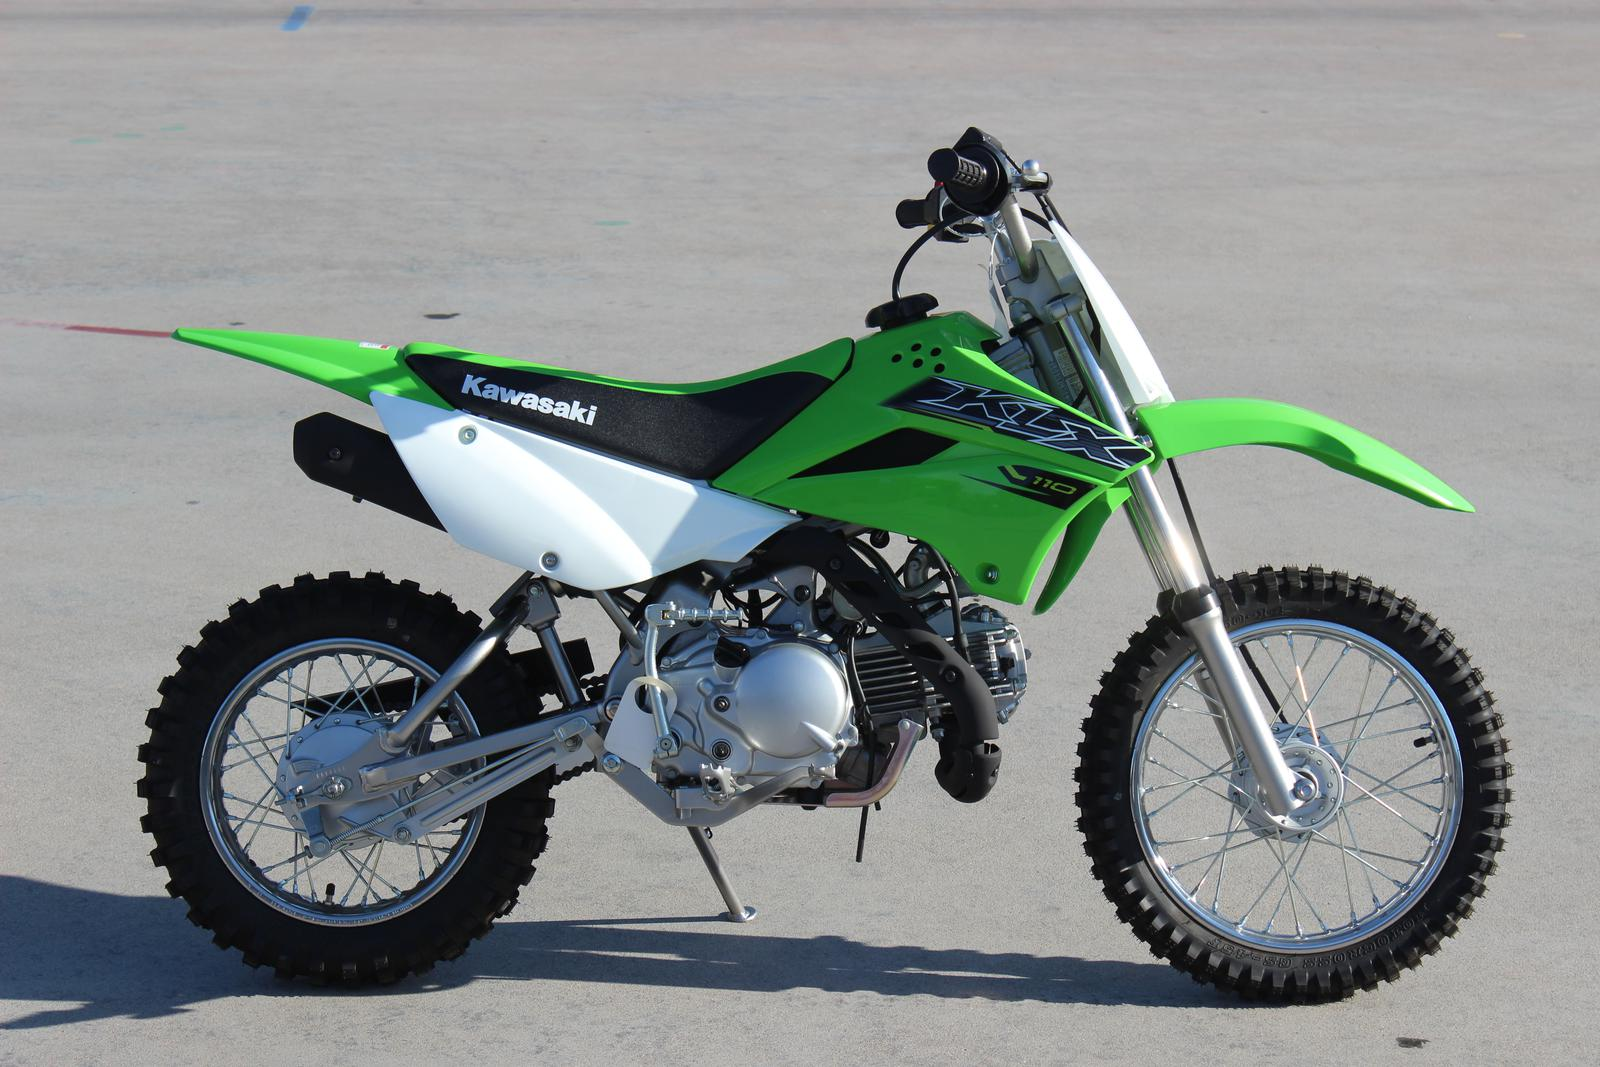 2019 Kawasaki KLX110 for sale in Scottsdale, AZ. GO AZ Motorcycles ...